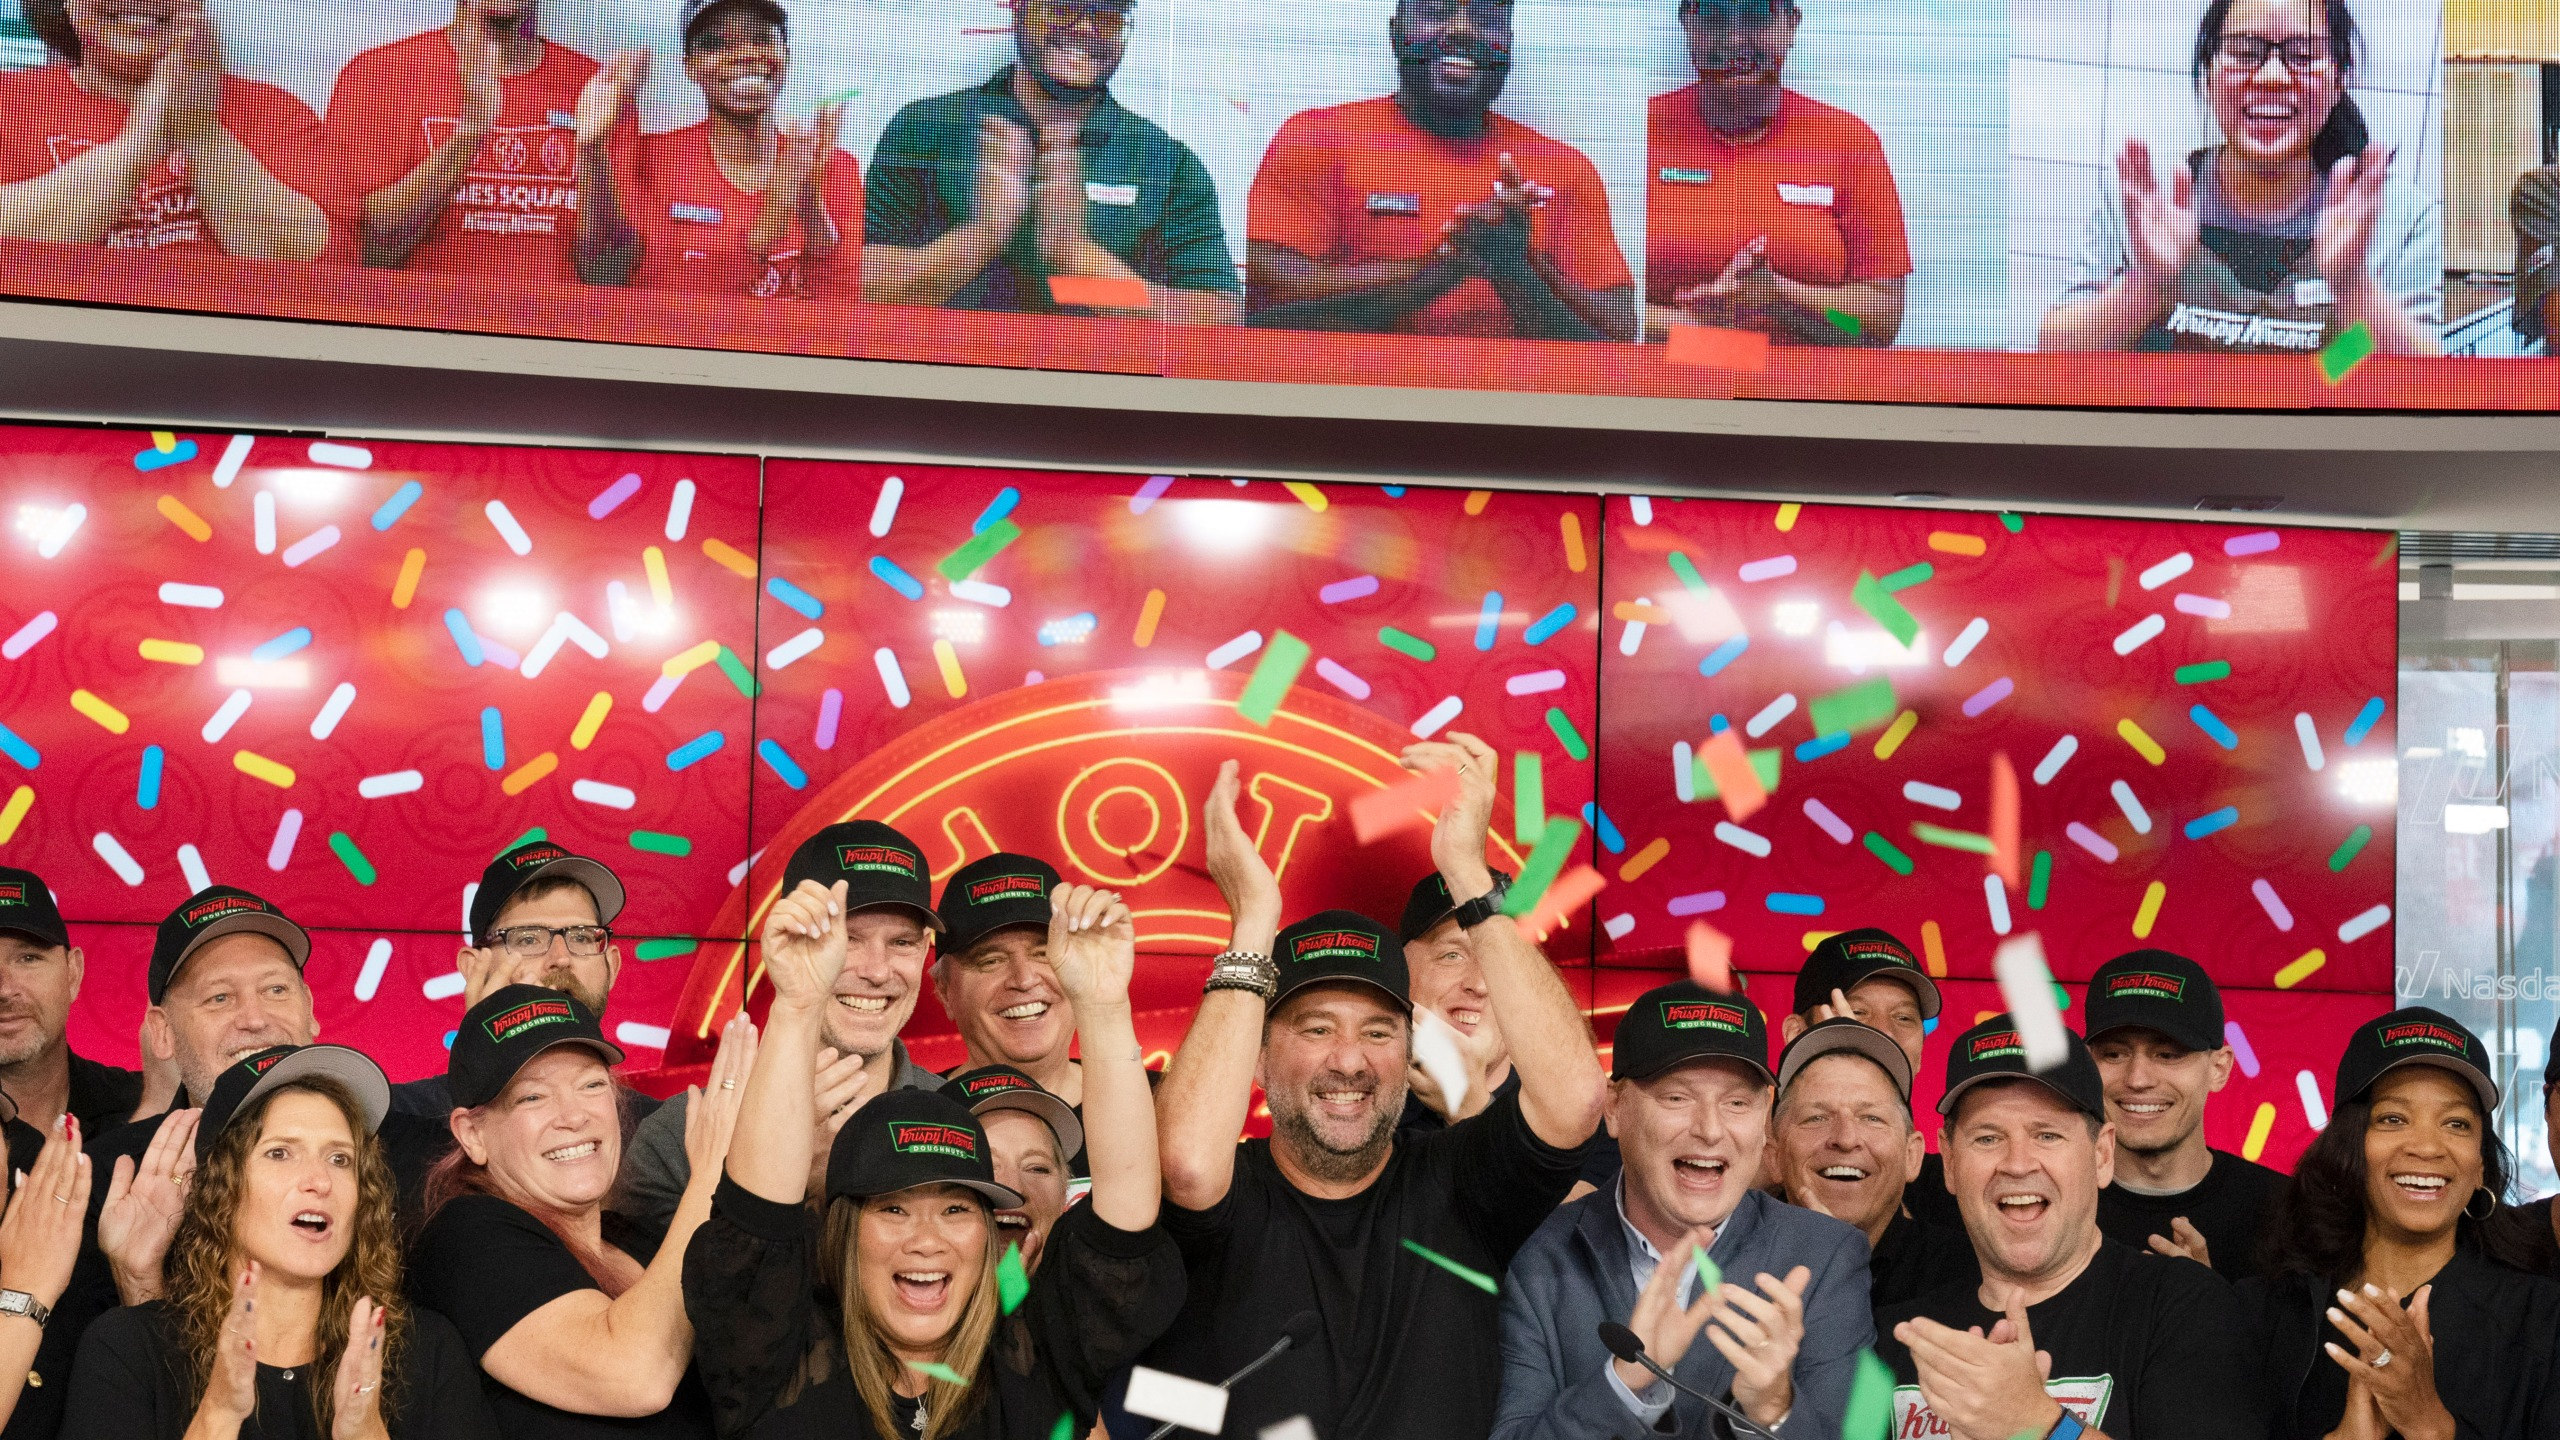 Krispy Kreme CEO Mike Tattersfield, center, applauds during the company's IPO at the Nasdaq Opening Bell, Thursday, July 1, 2021 in New York. The Charlotte, North Carolina-based company, known for its glazed doughnuts, priced its initial public offering of 29.4 million shares at $17 a piece. That's well below the $21 to $24 it was seeking. It raised $500 million and plans to use proceeds to pay down debt. (AP Photo/Mark Lennihan)